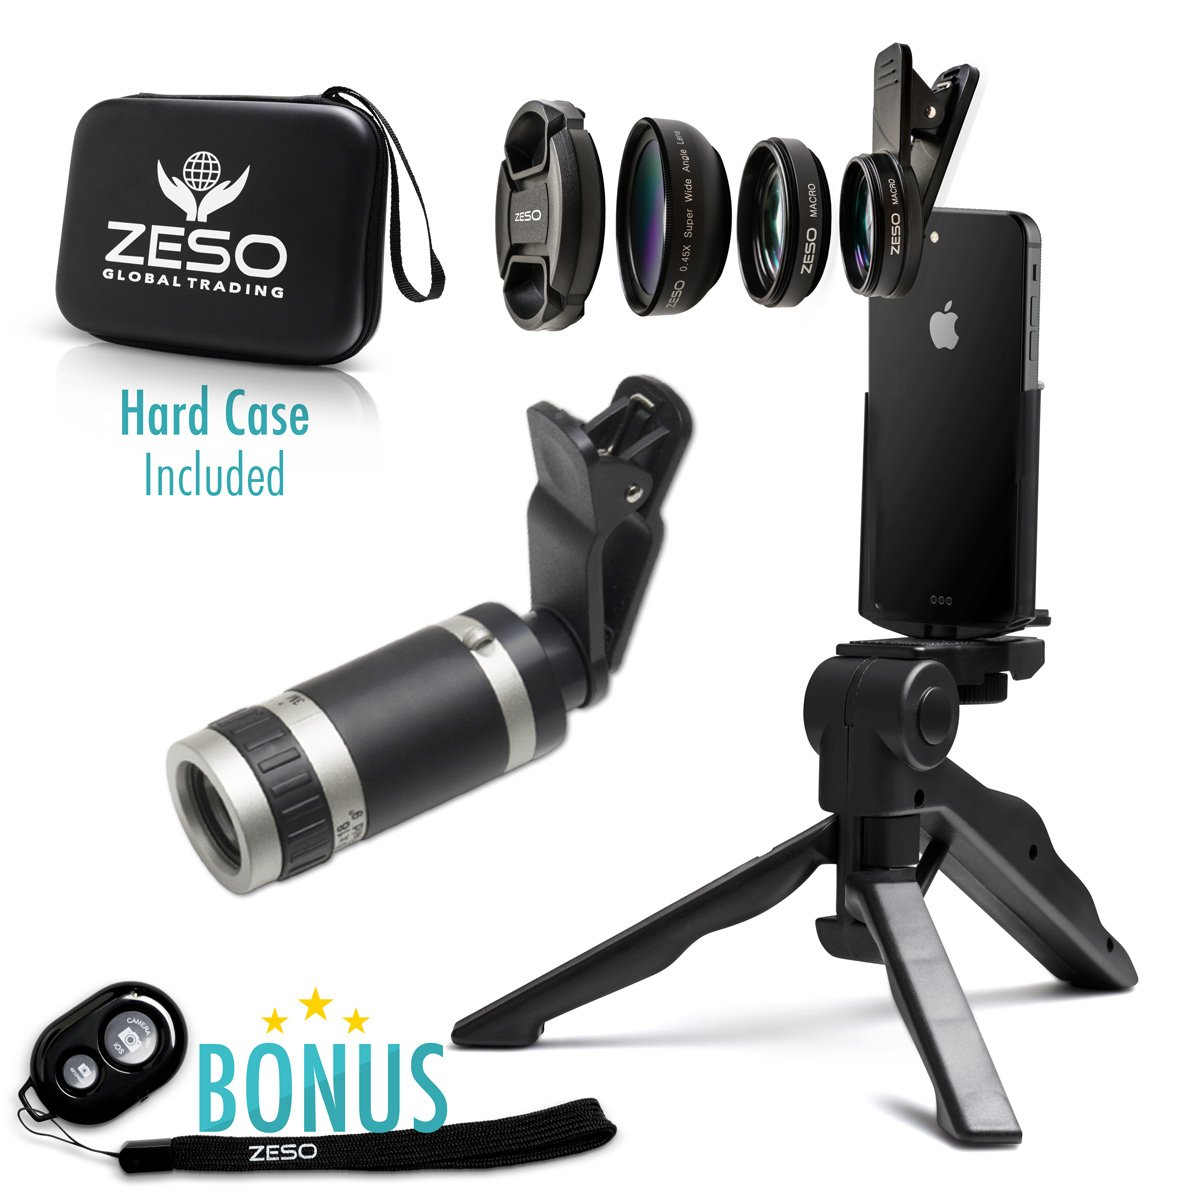 Camera Lens Kit by Zeso | Professional Telephoto, Macro & Wide Angle Lenses | Multi-use tripod And Selfie Remote Control | For iPhone, Samsung Galaxy, iPads, Tablets | Hard Case & Universal Phone Clip by Zeso lens